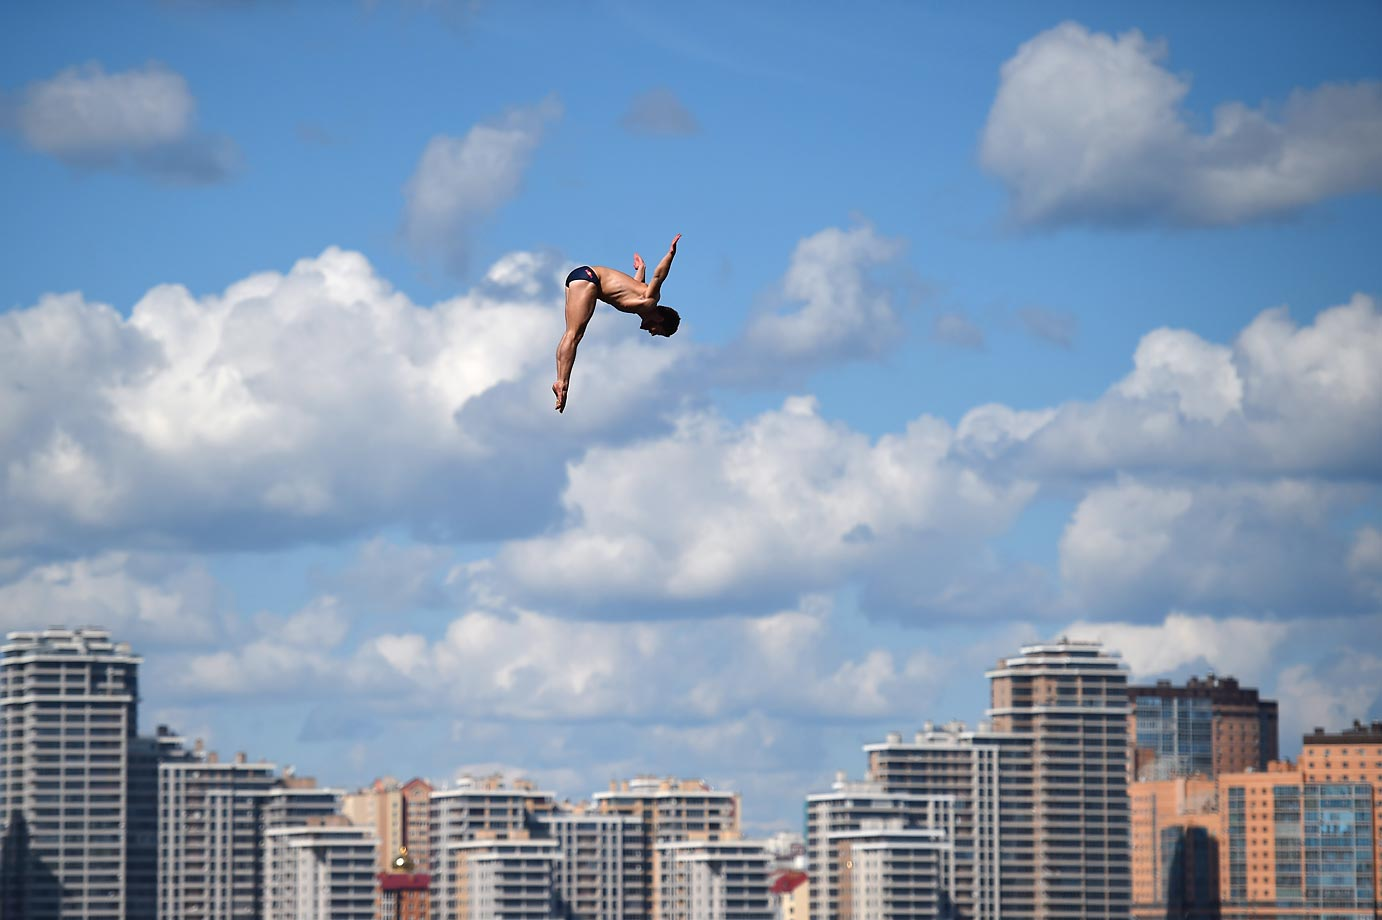 David Colturi during the High Diving 27m preliminary at the 16th FINA World Championships in Kazan, Russia.